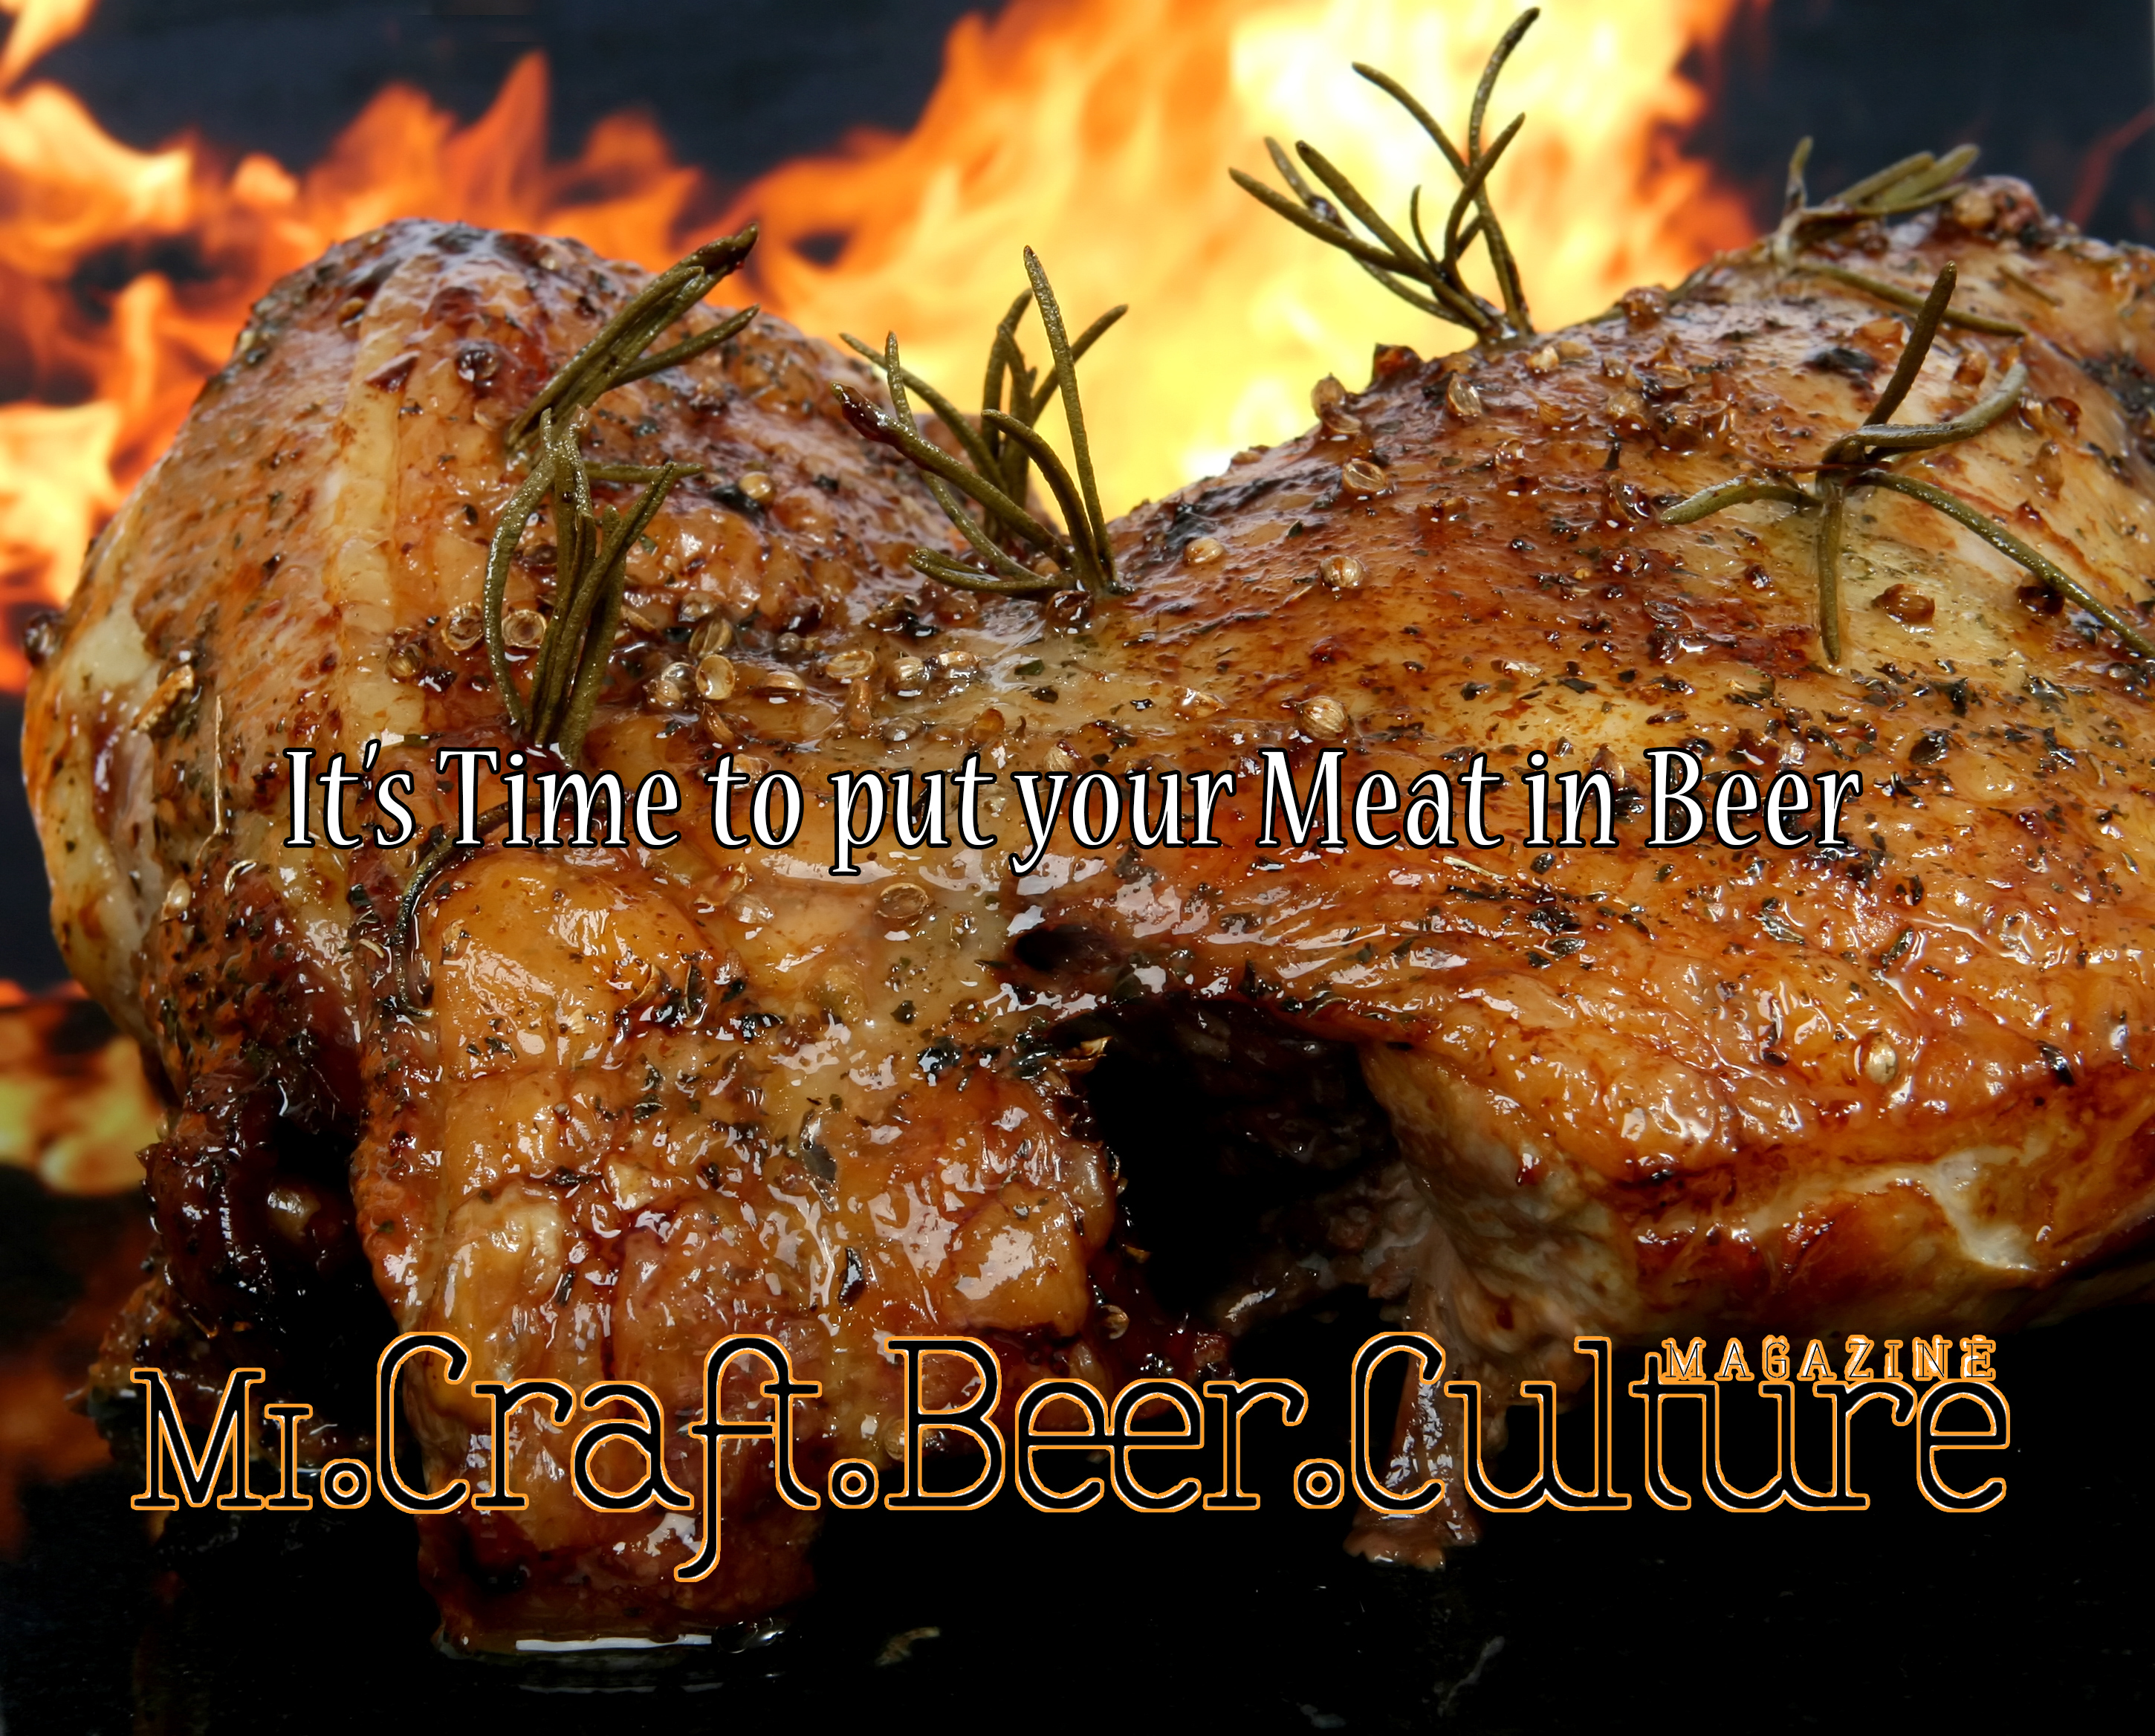 It's Time to put your Meat in Beer